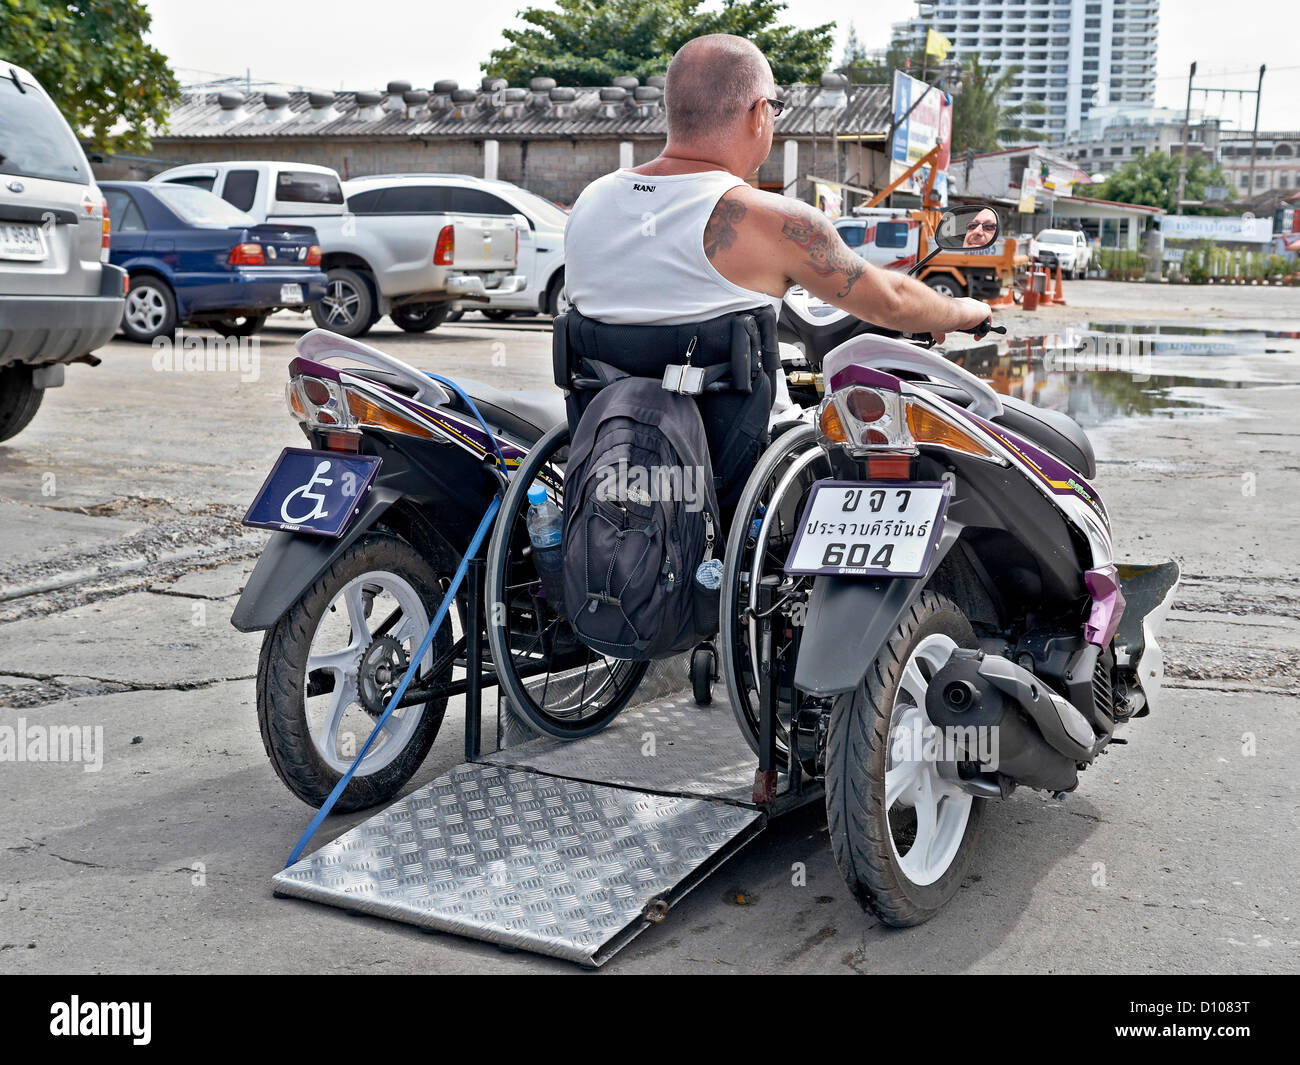 Owner modified motorcycle inventively constructed to carry invalid wheelchair and passengers with easy access ramp. - Stock Image